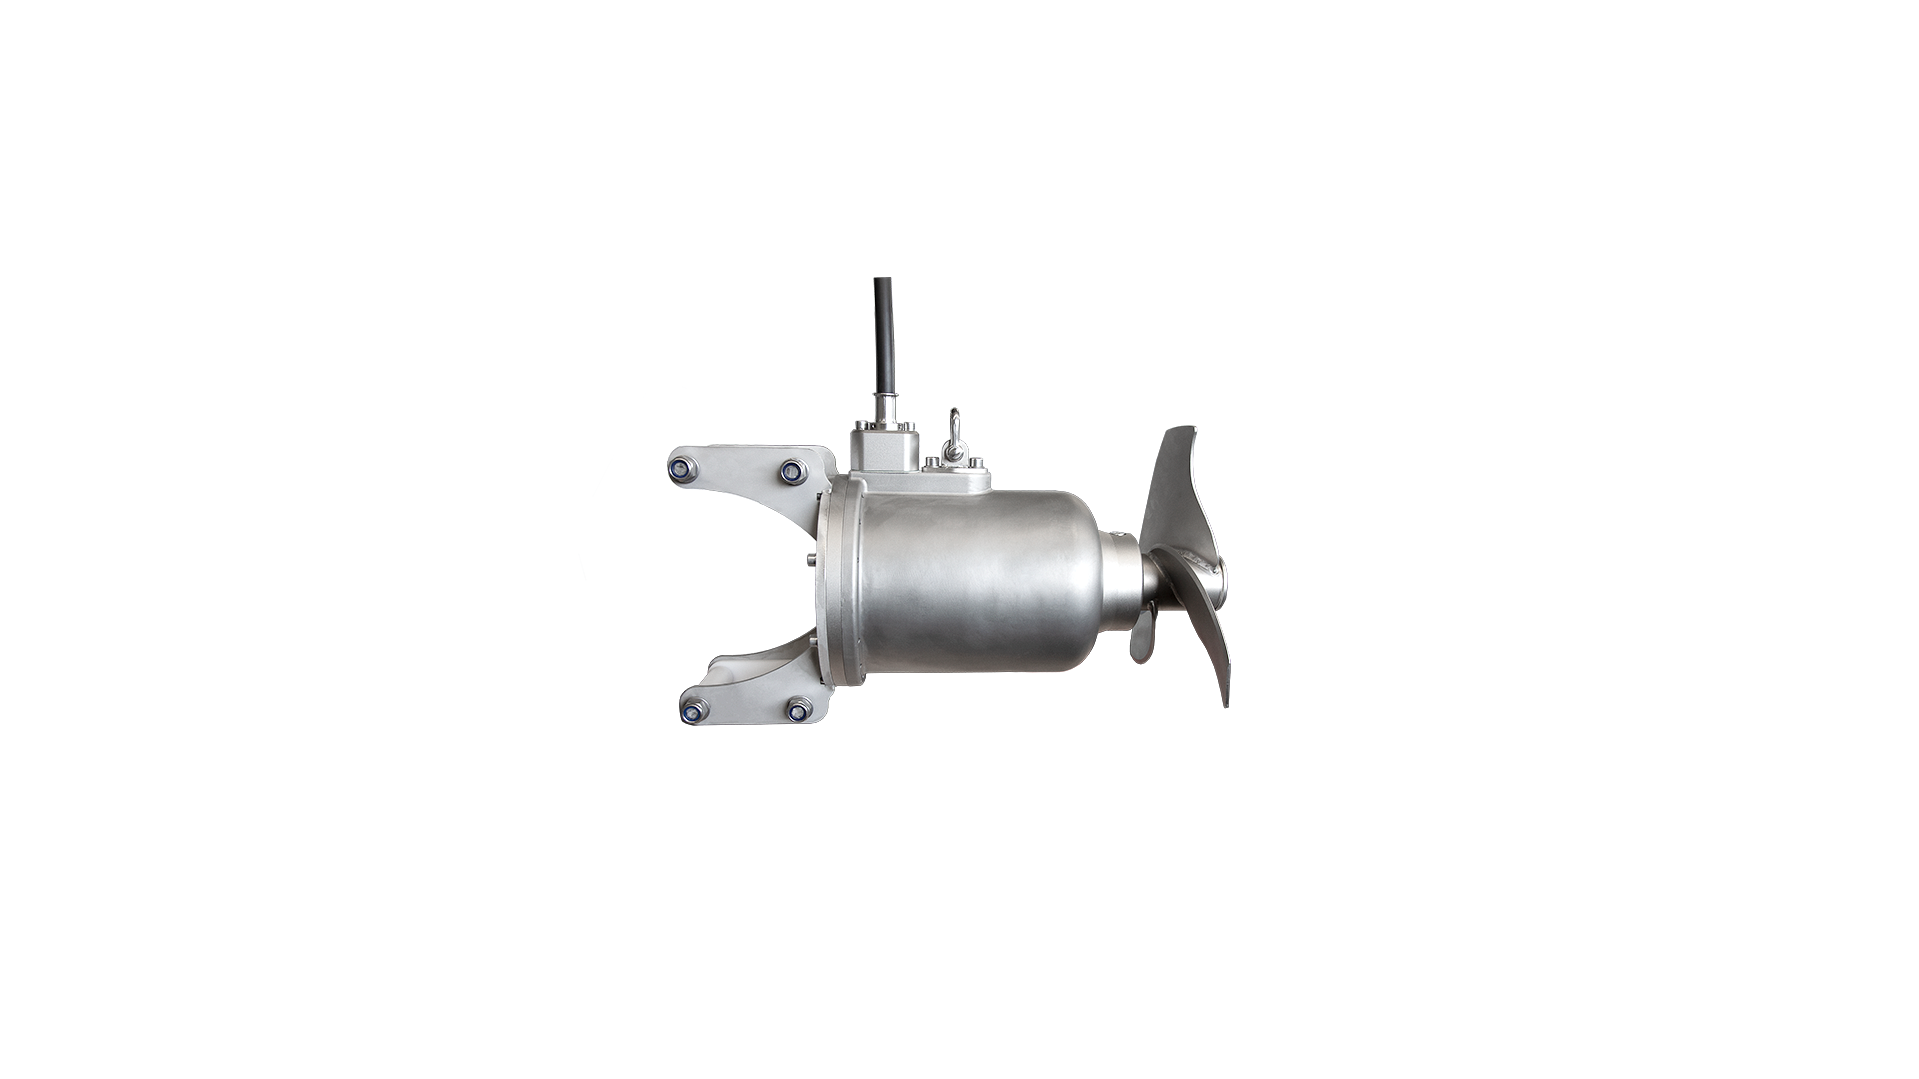 Gallery image 0 - OPTIMIX 2A 15-720 * Submersible  motor * Dry matter content up to 4 % * Rated power 0.8 | 1.5 | 2.2 kW * Propeller-Ø 250 | 320 | 380 mm * Propeller speed 738 | 728 | 714 U/min * Fast running agitator for aggressive media with low pH values